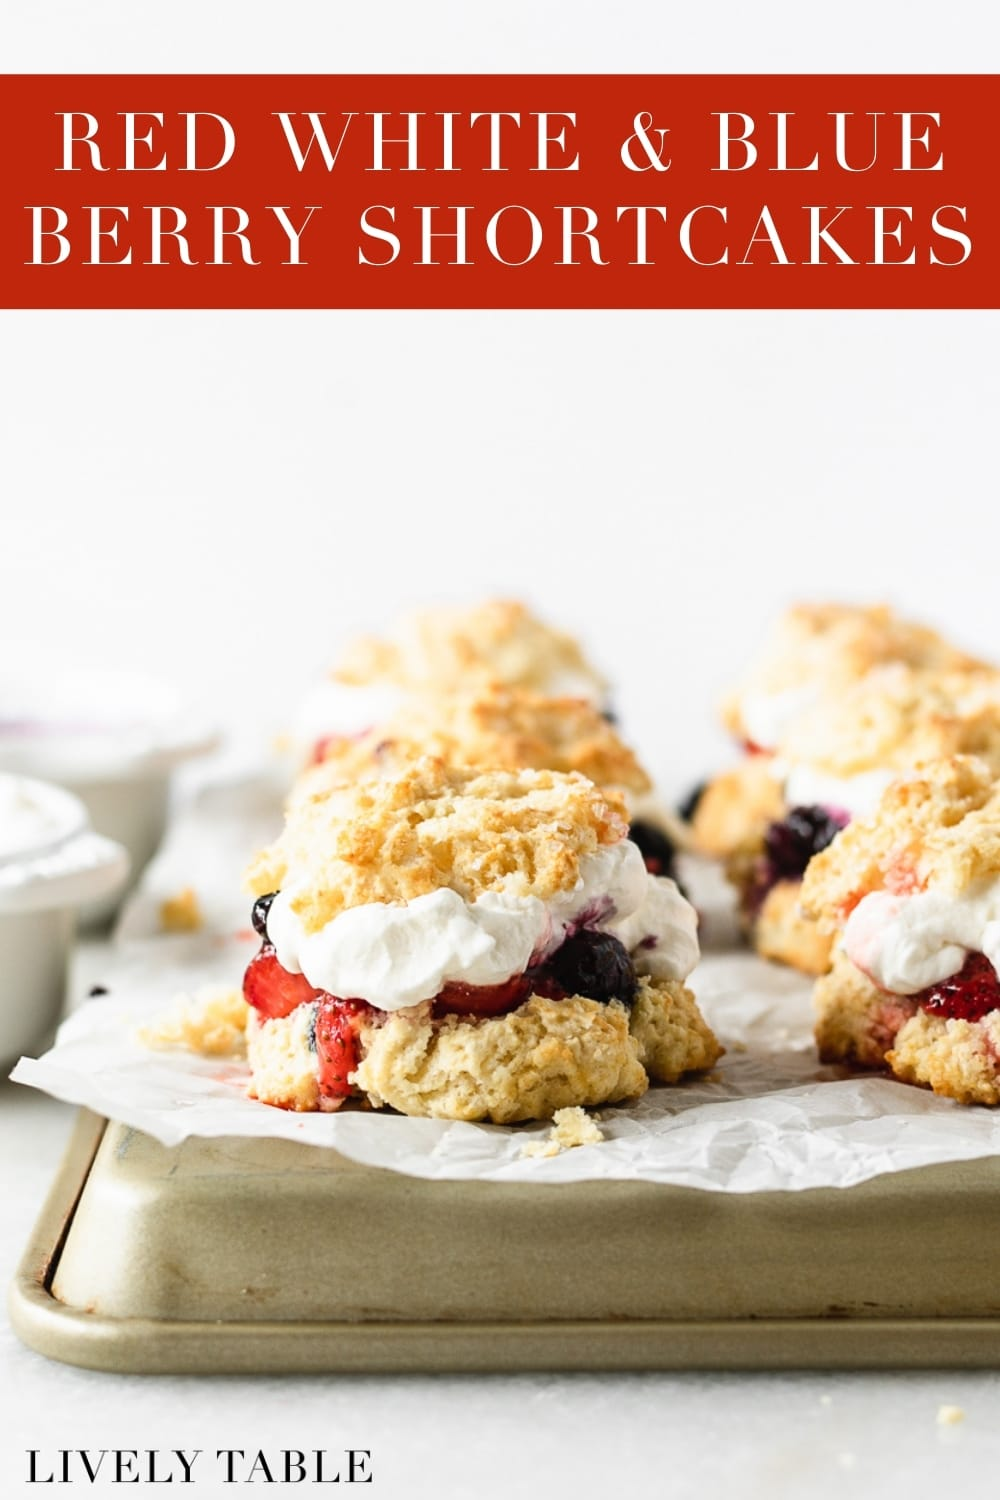 Red, White and Blueberry Shortcakes with a (slightly) healthier whipped cream are perfect little desserts to celebrate patriotic summer celebrations, from 4th of July, to Memorial Day and Labor Day! #redwhiteandbluerecipes #fourthofjuly #holidayrecipes #shortcake #blueberry #strawberry #healthy #vegetarian #summerrecipe #laborday #memorialday #4thofjuly